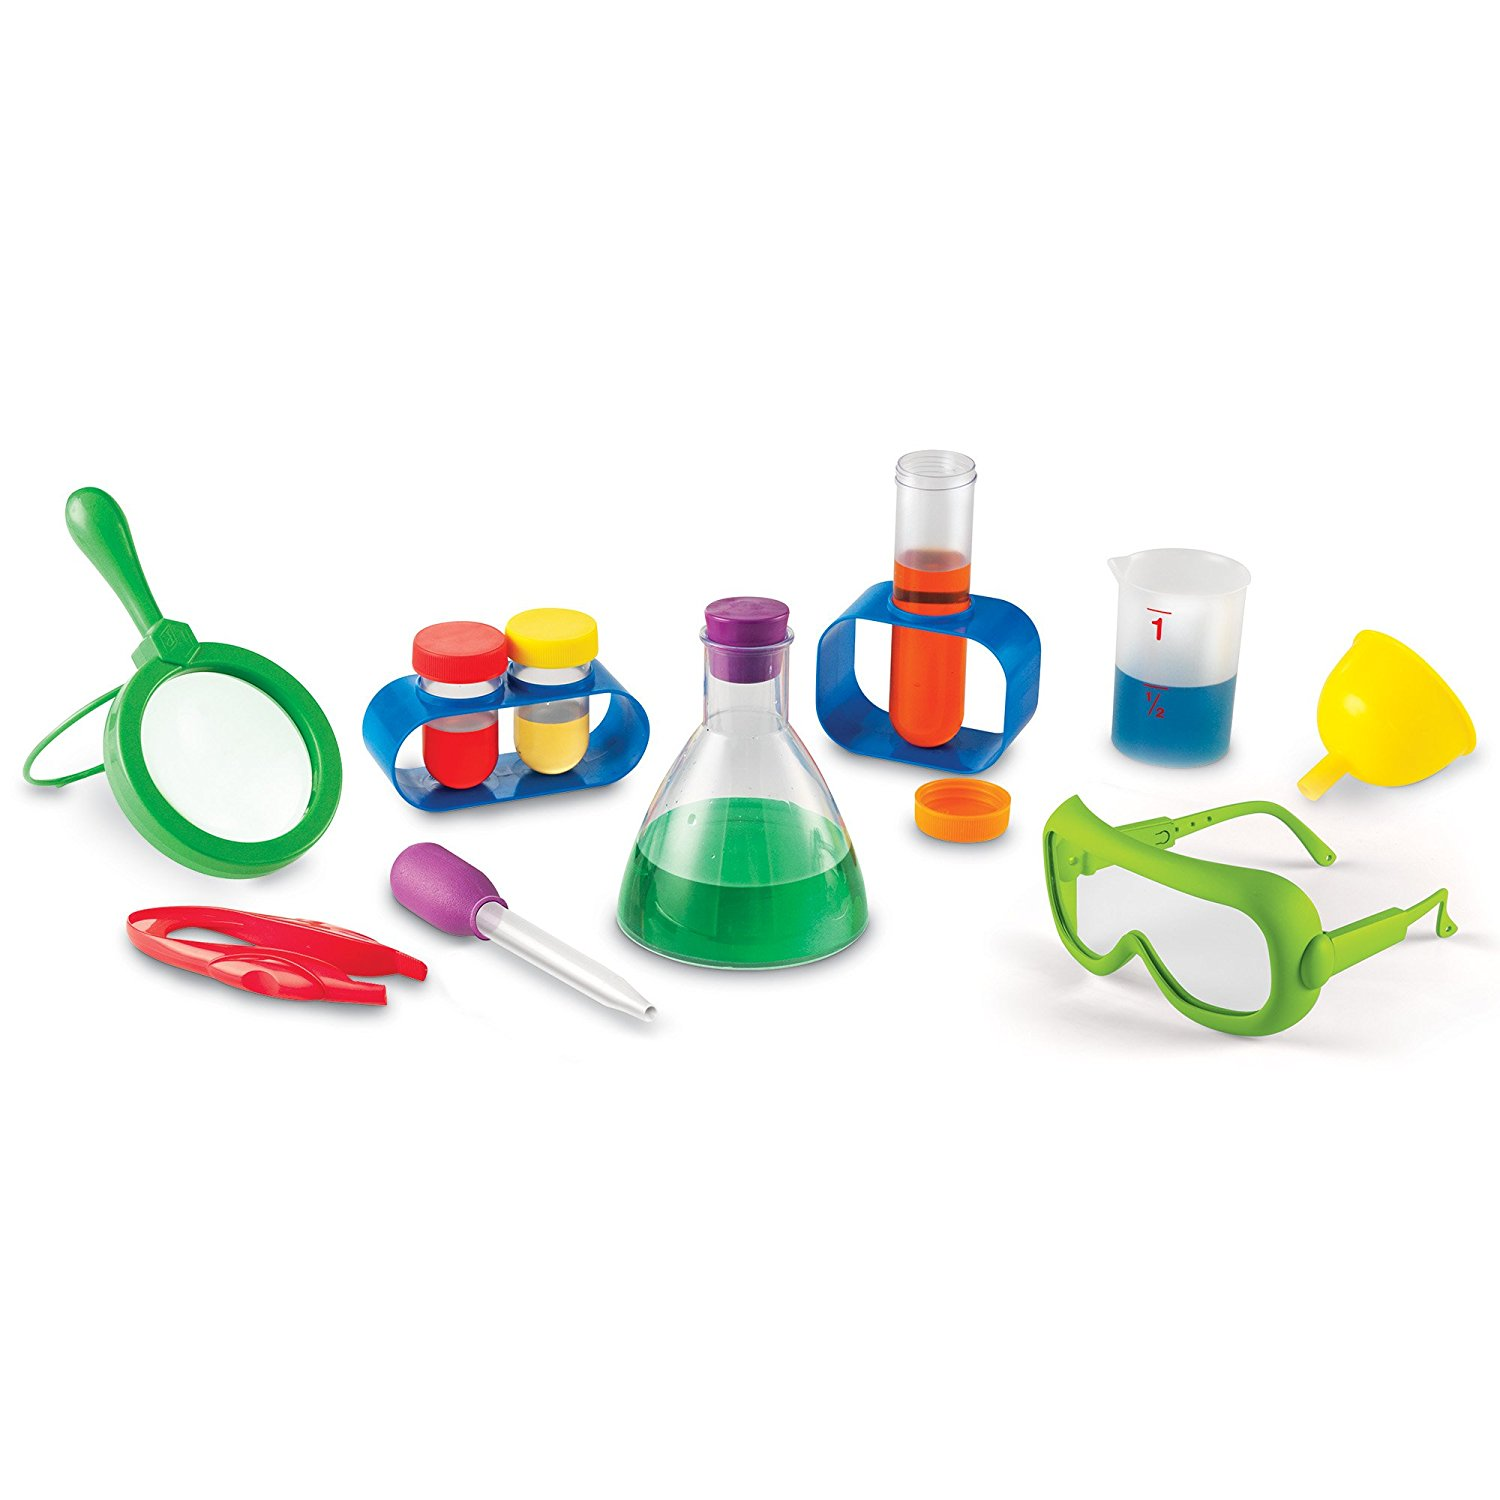 Best Science Toys For Kids : Stem toys best science math for preschoolers